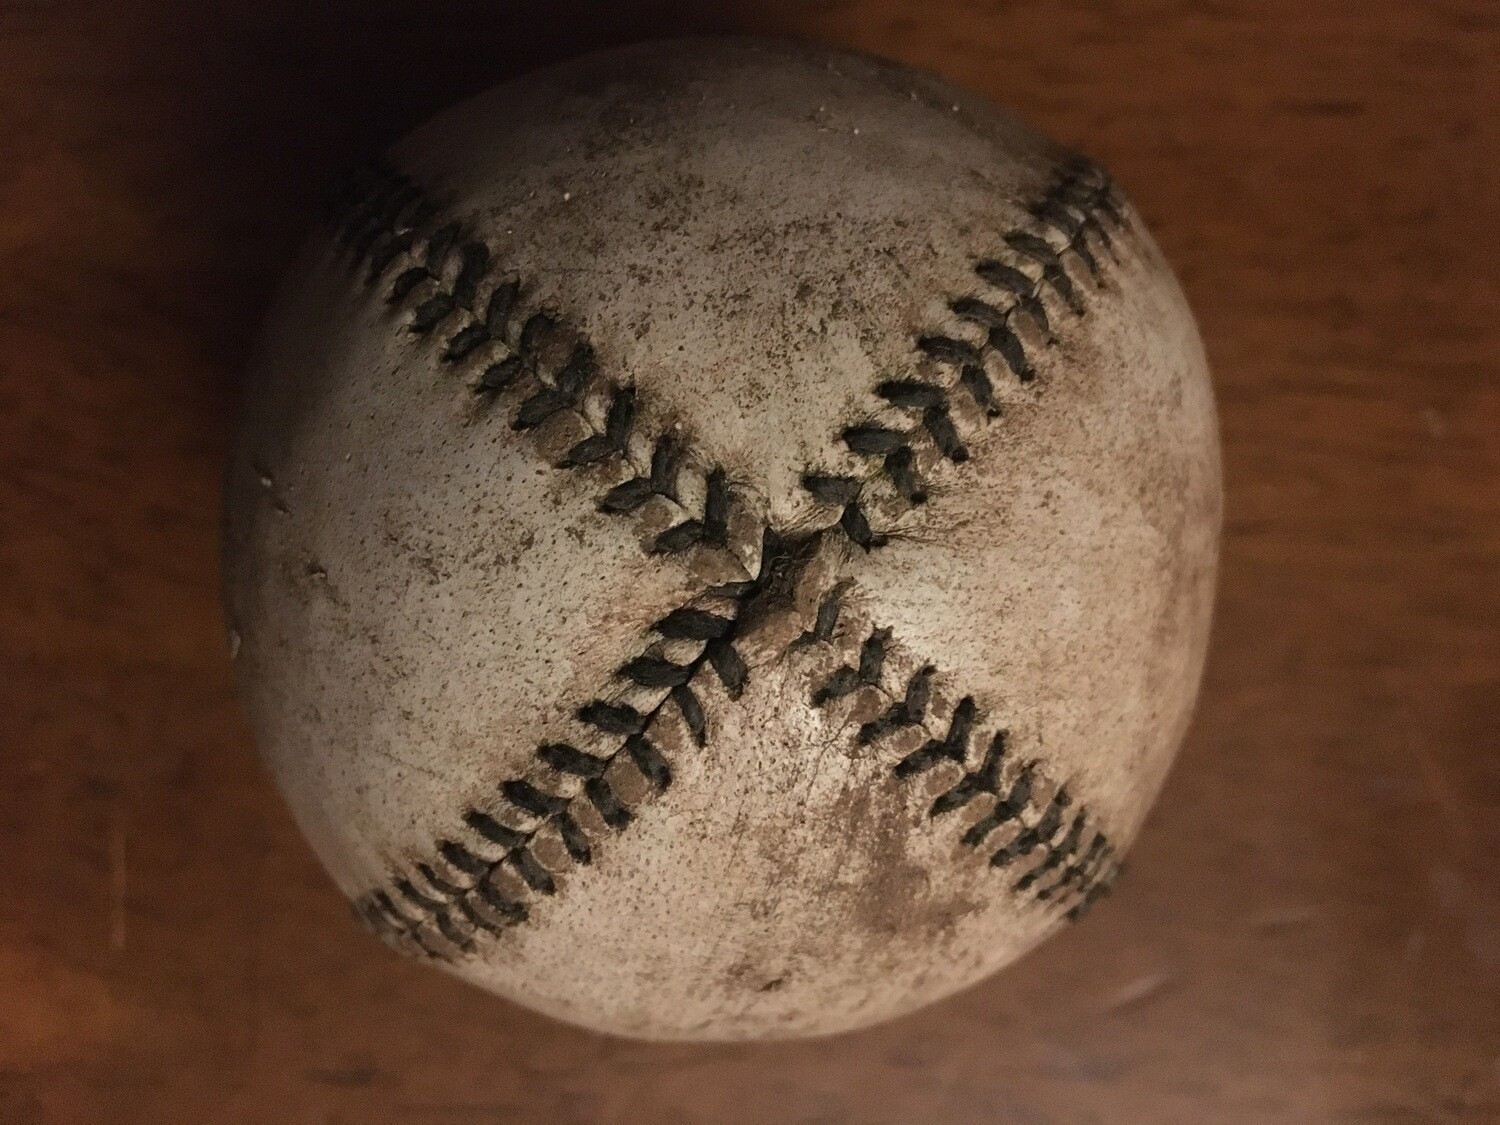 1860 Replica Game Ball (Used)